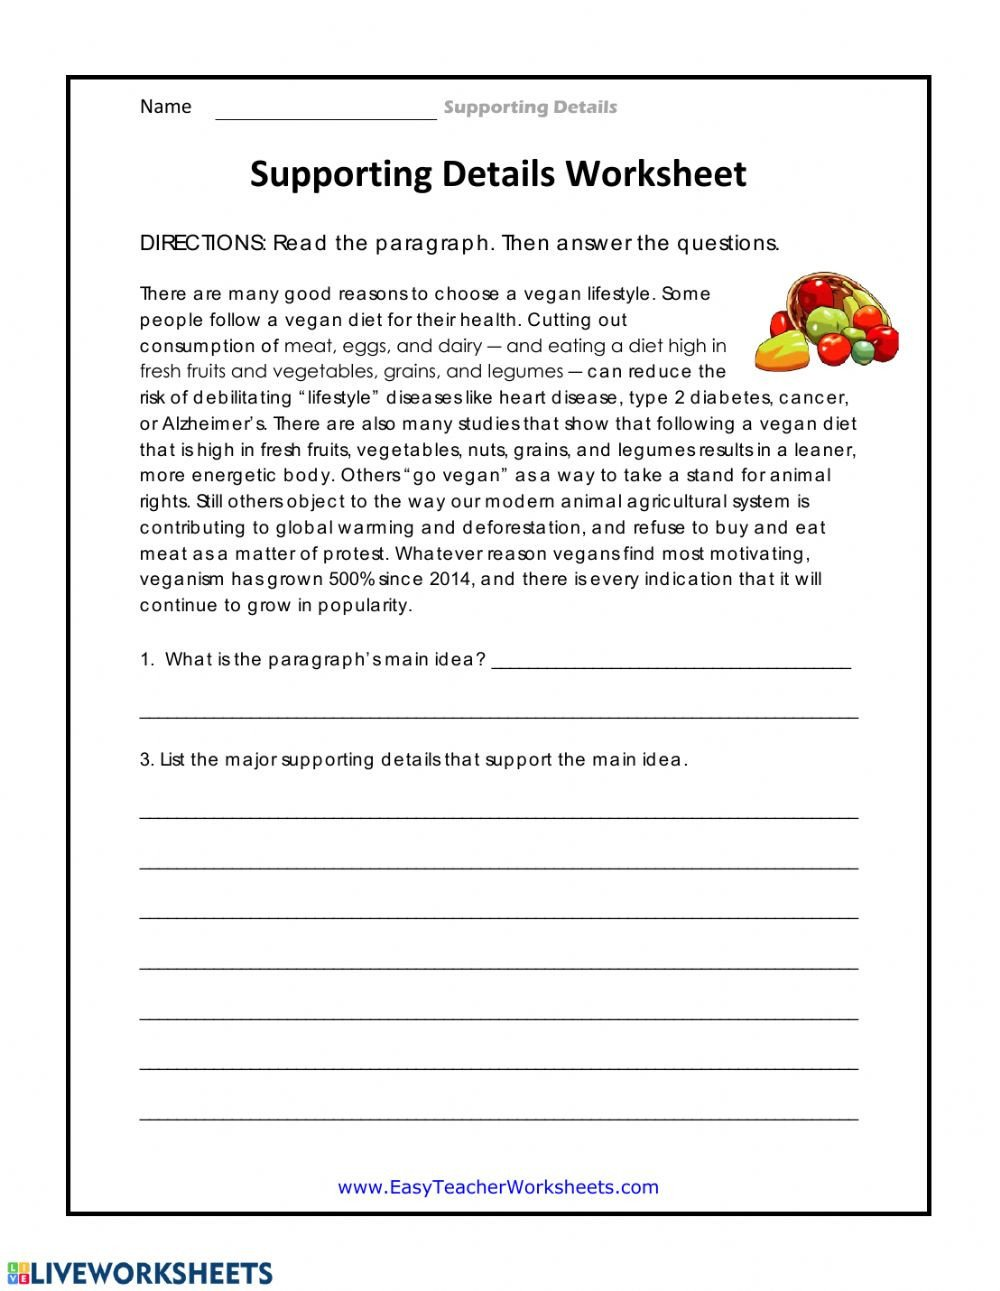 Supporting Details Worksheet Interactive worksheet